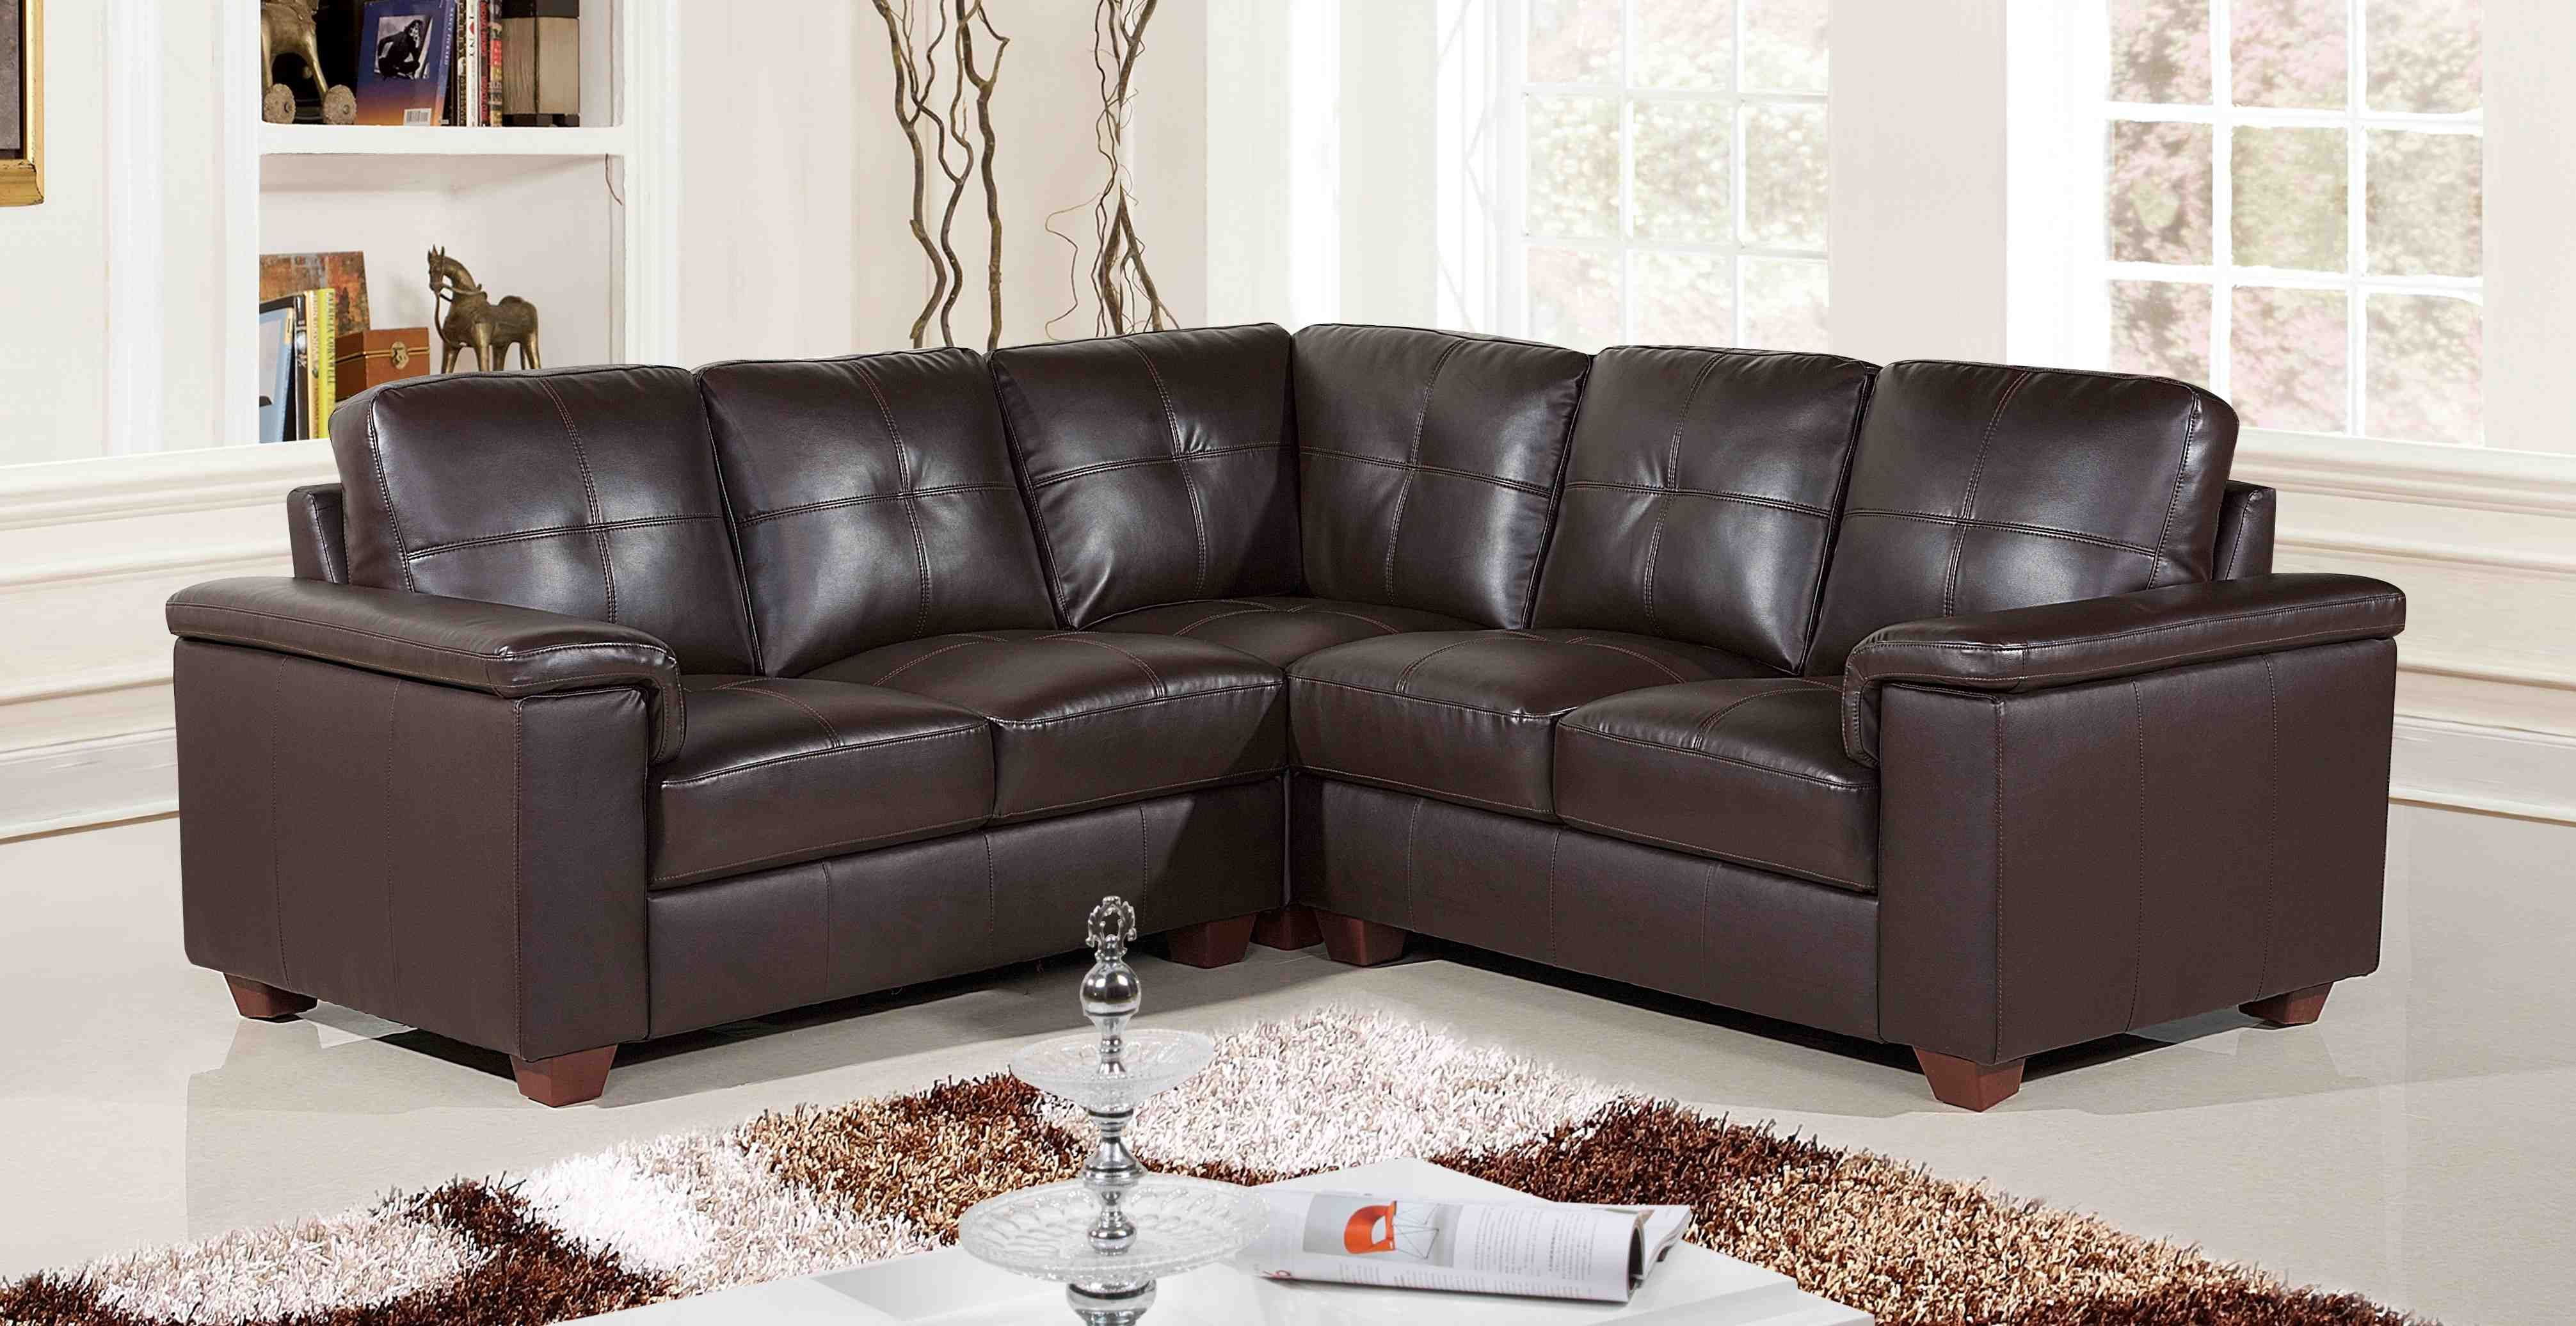 sofas for sale uk cheap alton sofa ecru review tall sectional leather suites